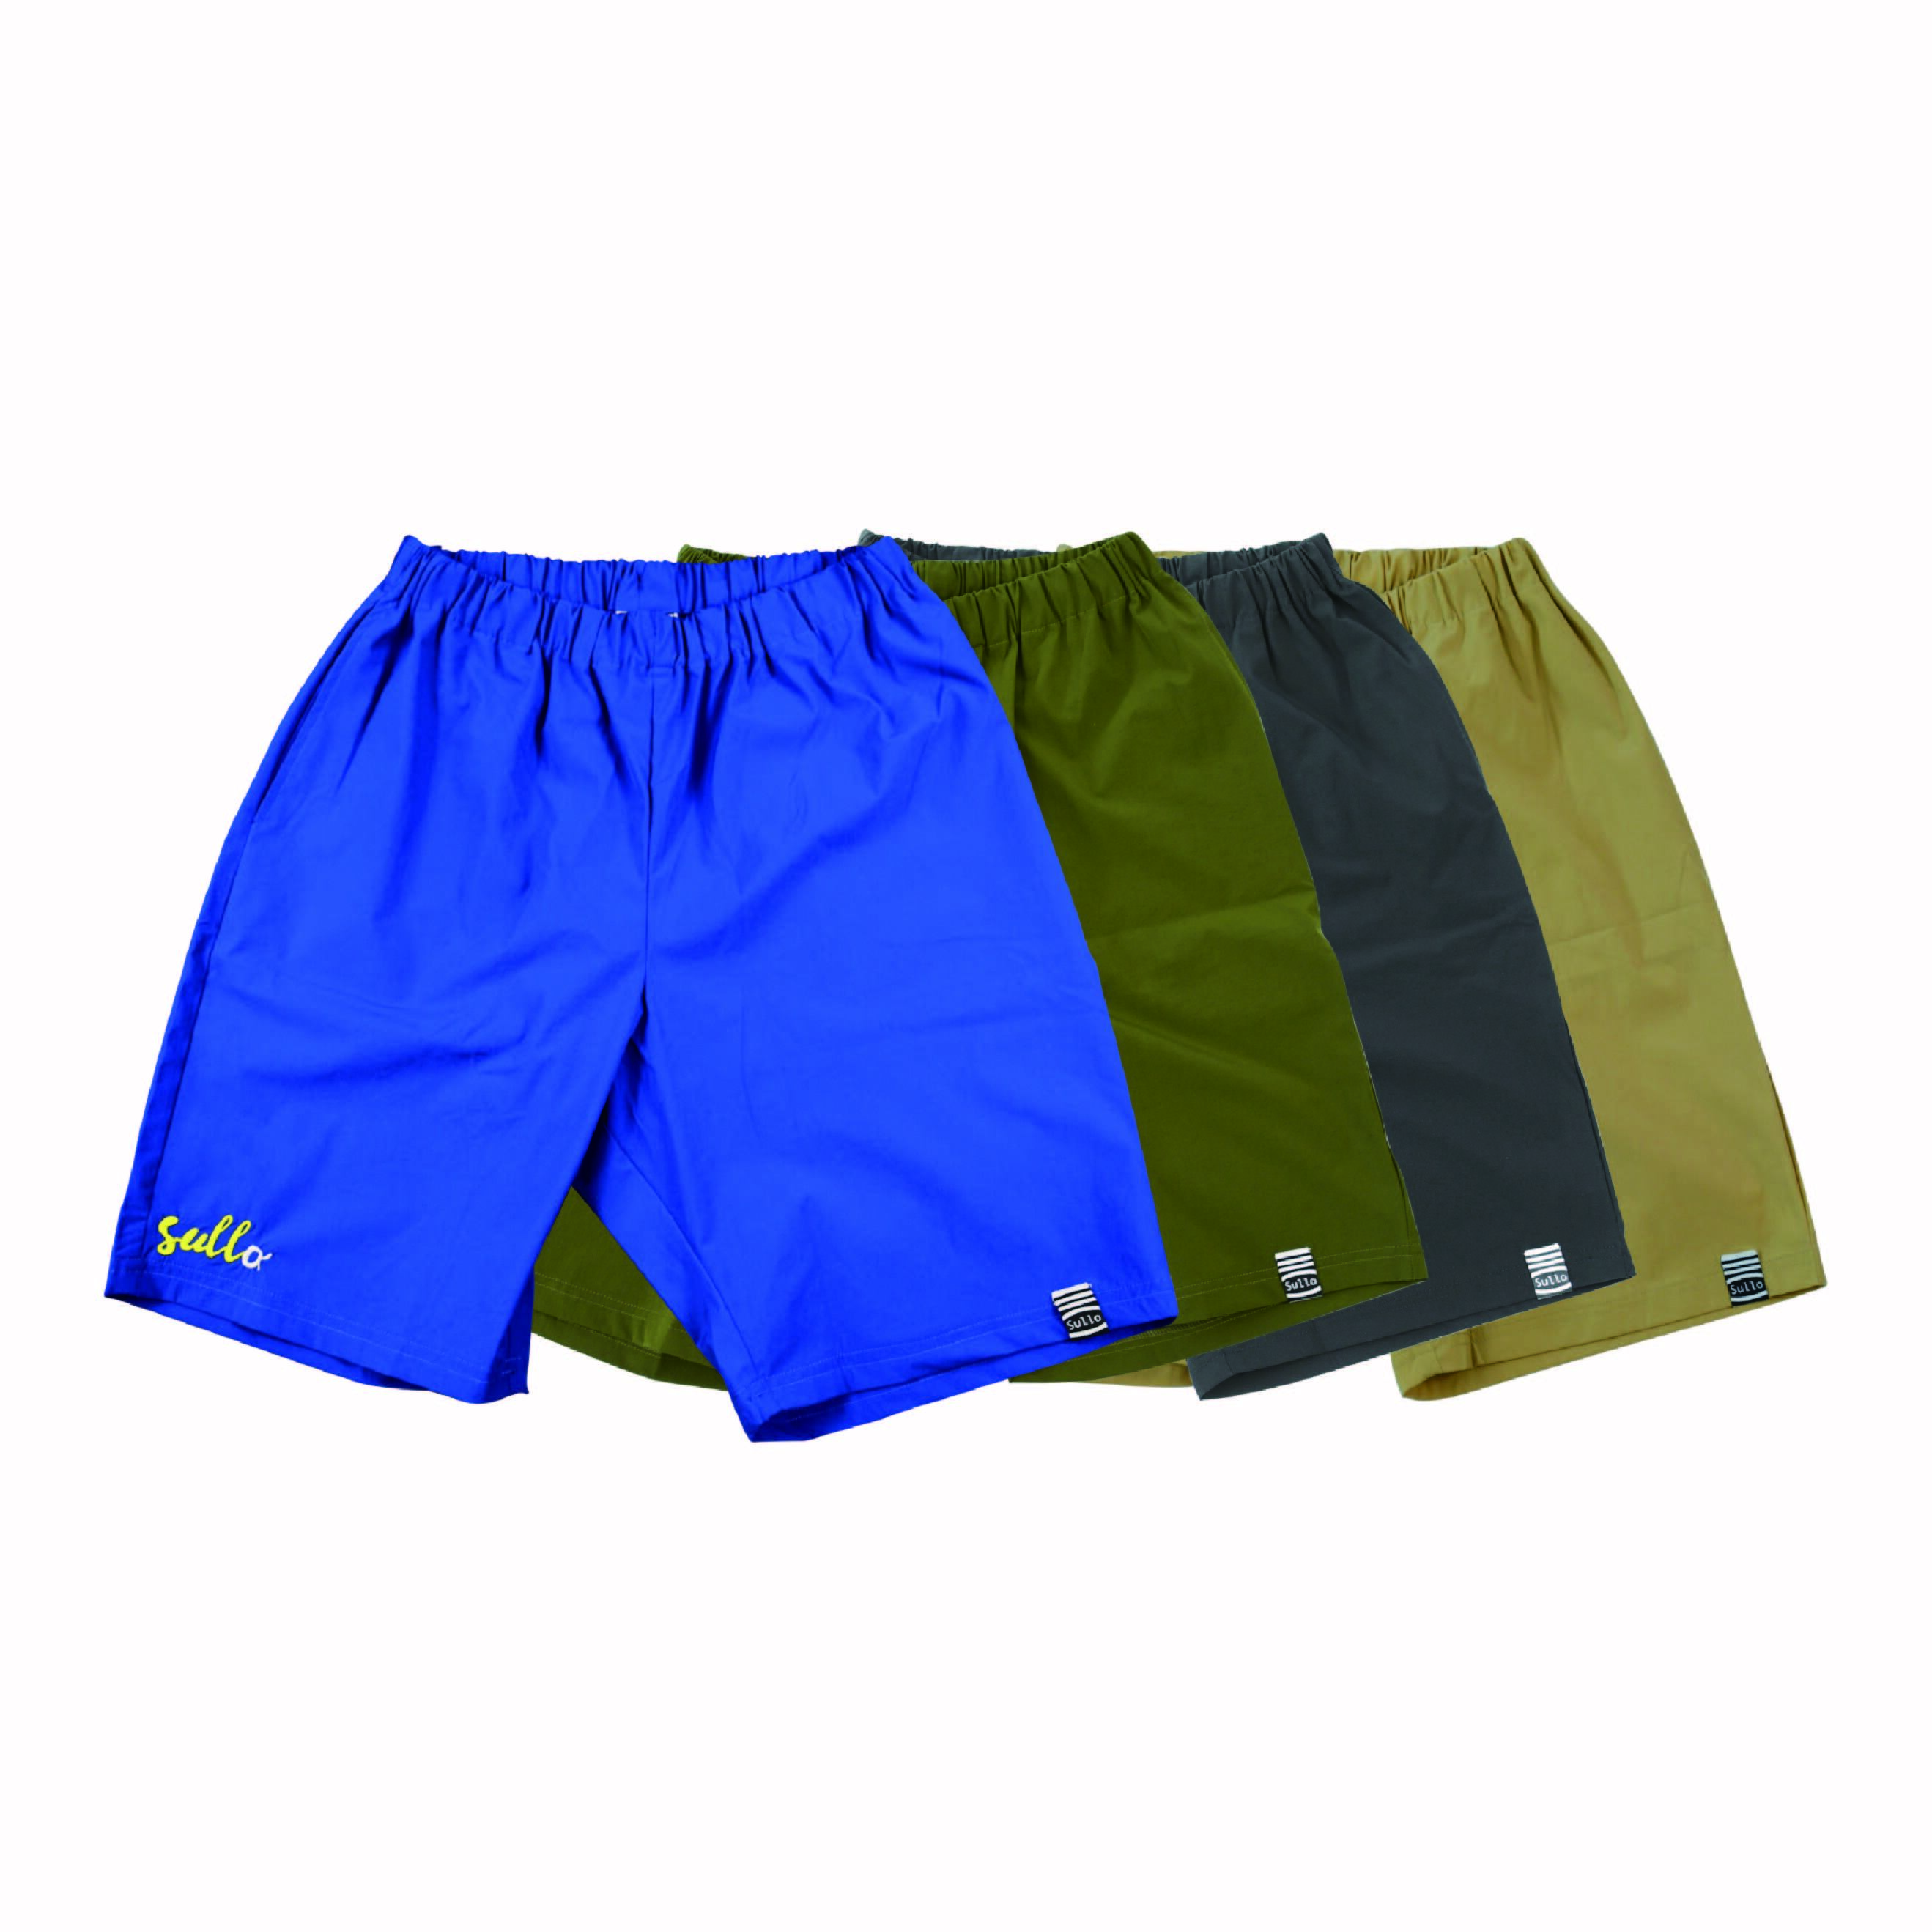 BREEZE SHORTS(全4カラー)